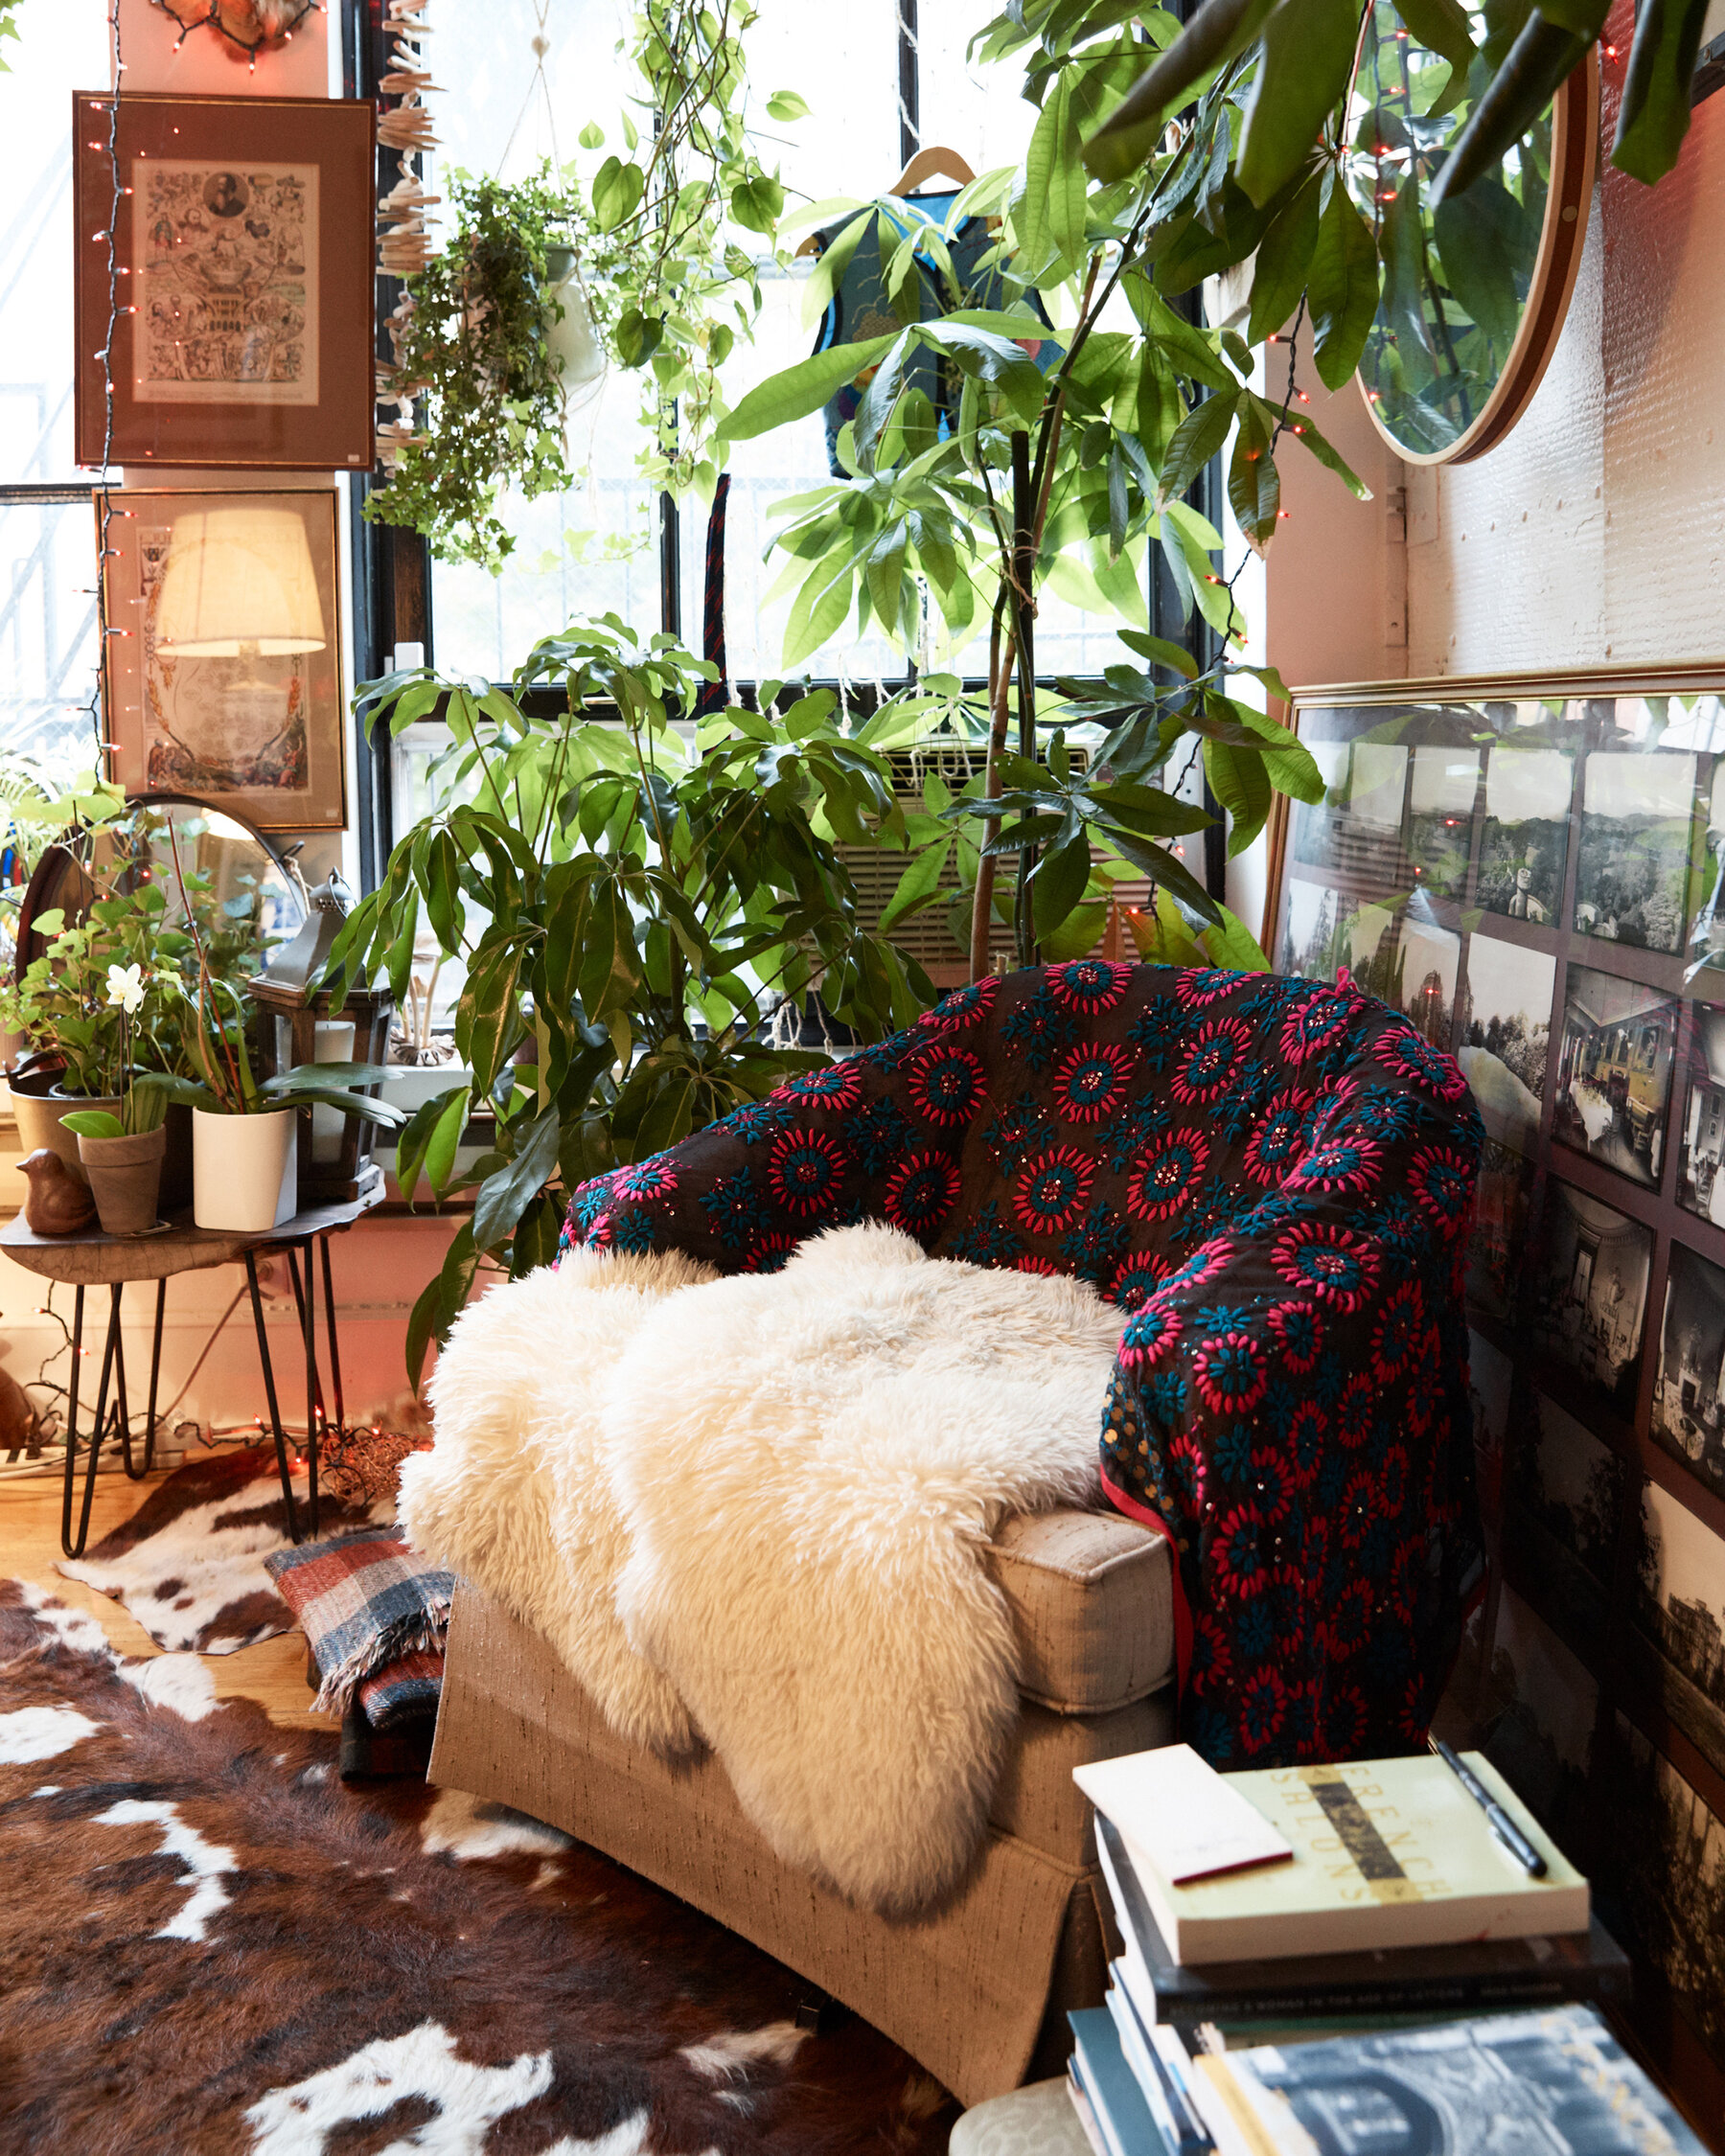 Steampunk Wohnung A Homey Party House In Soho - The New York Times